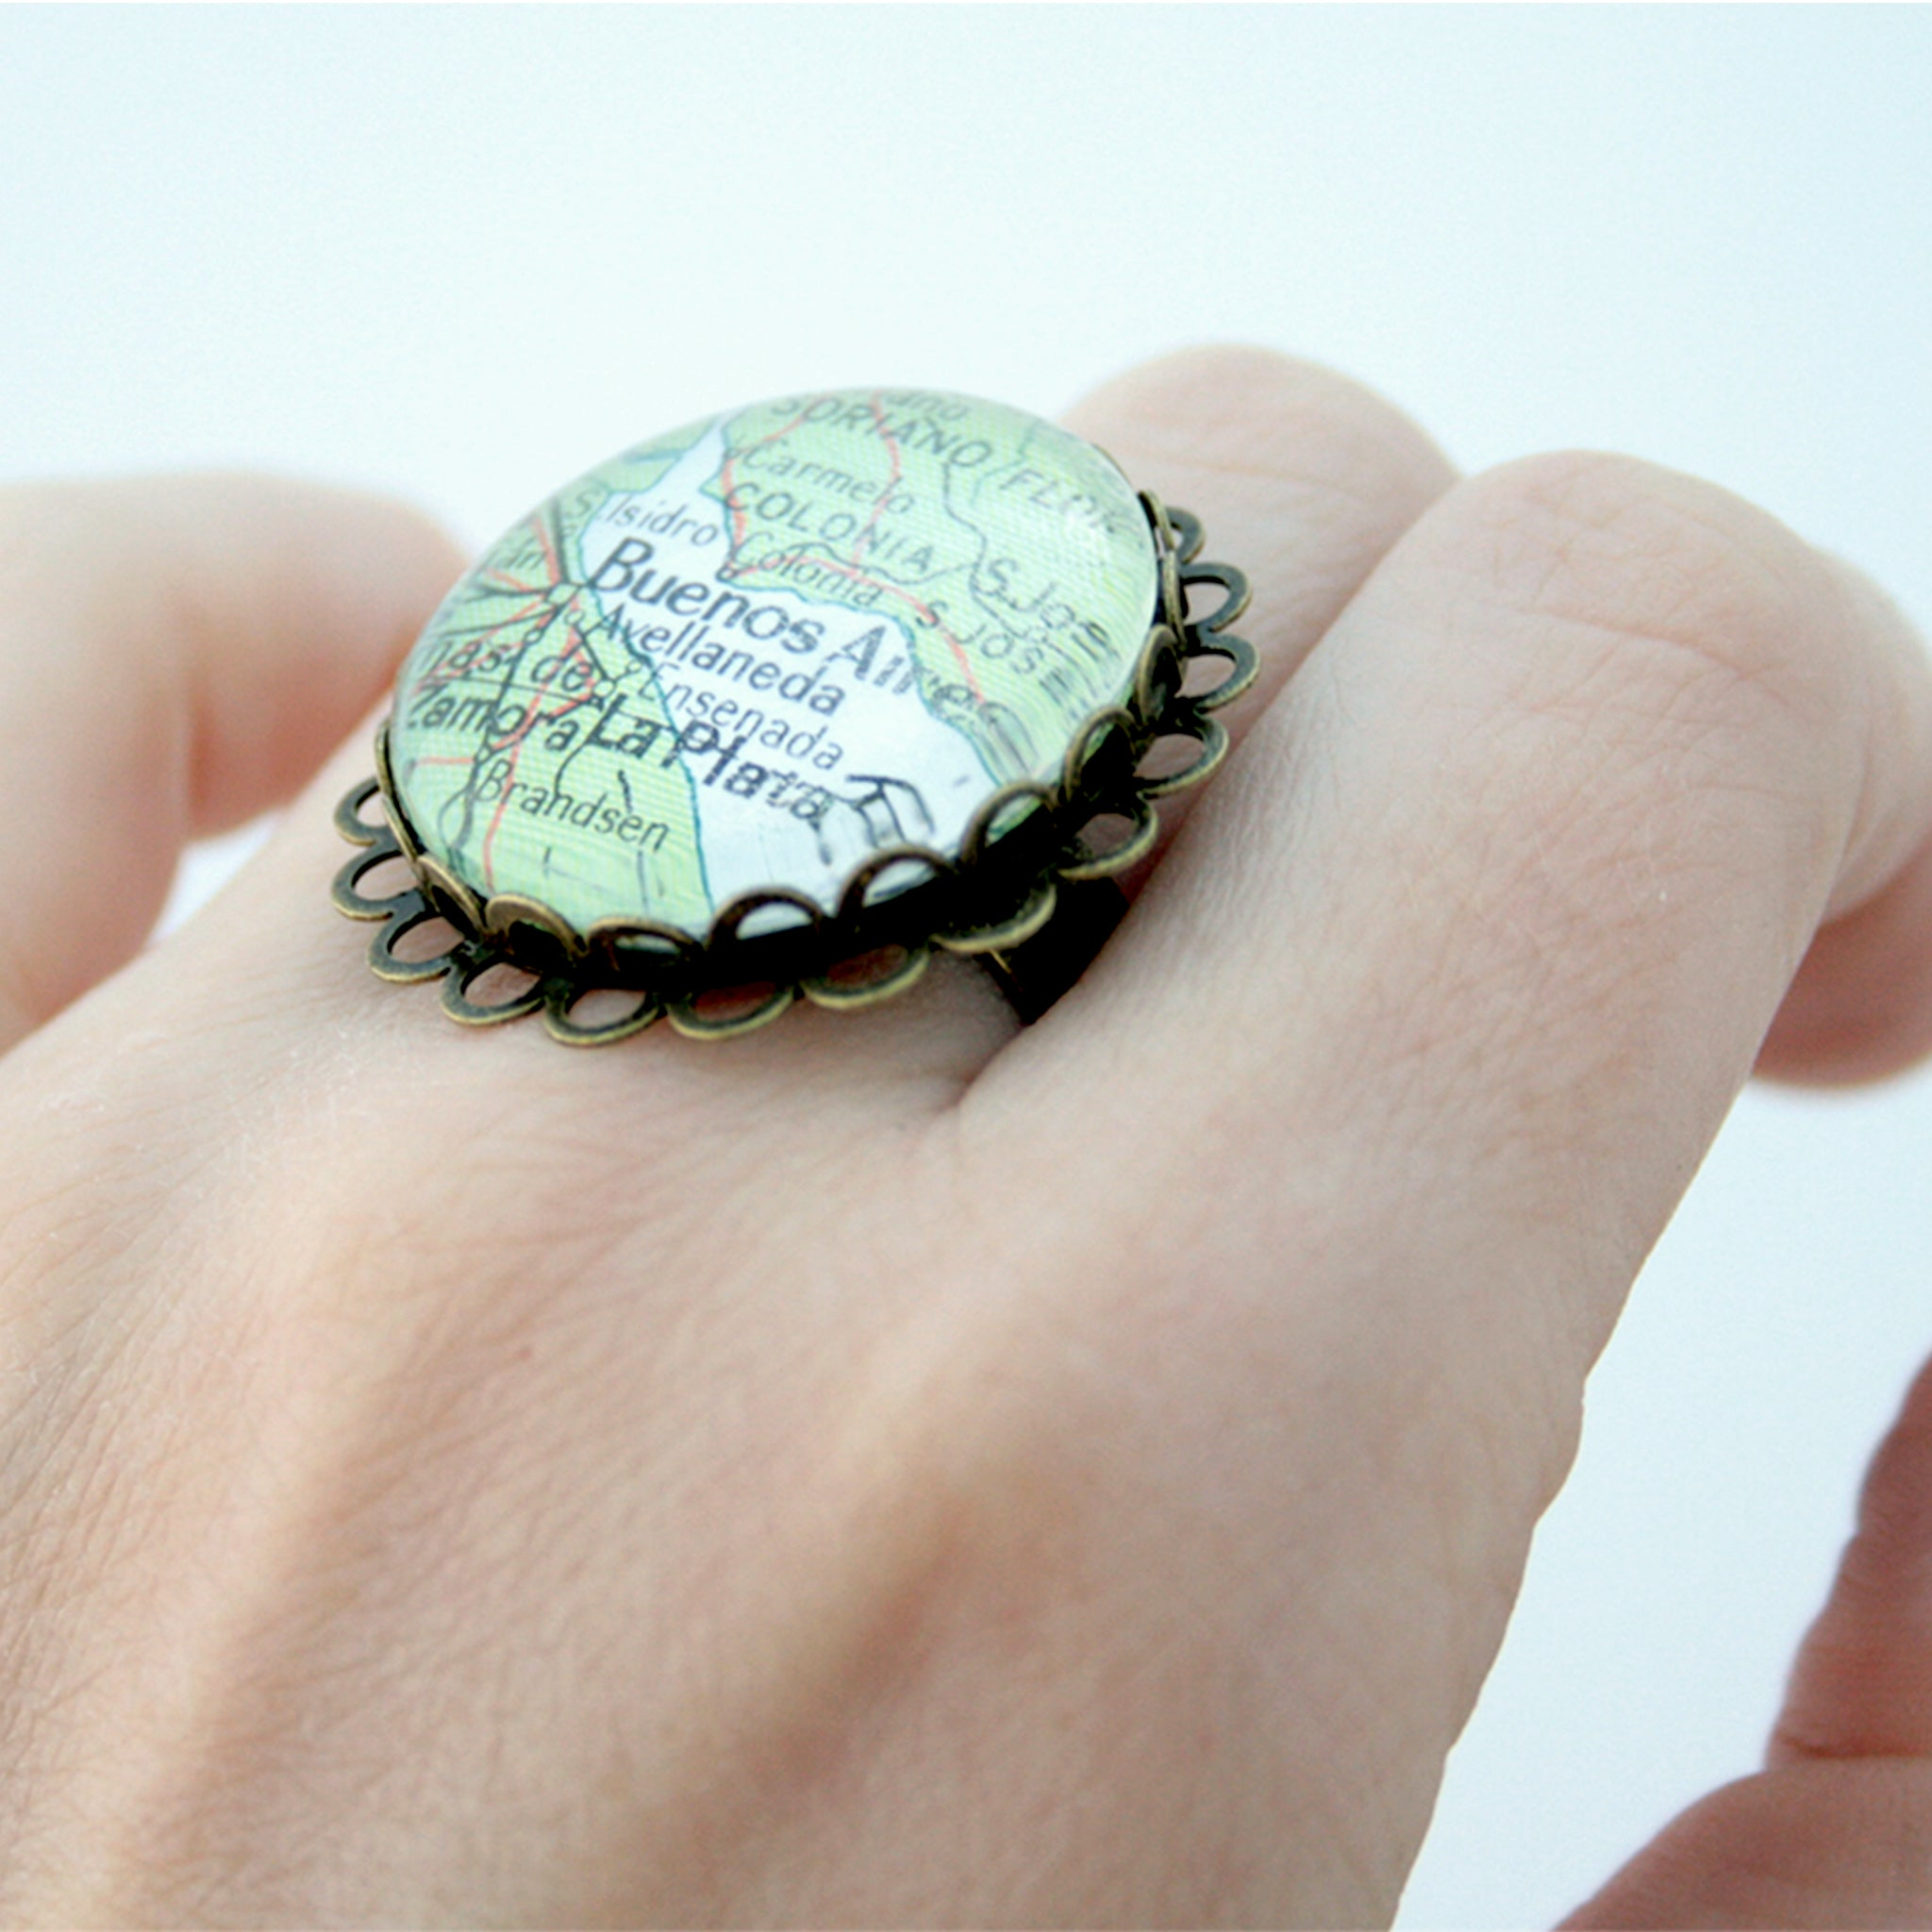 Round bronze ring personalised with custom map of Buenos Aires worn on hand